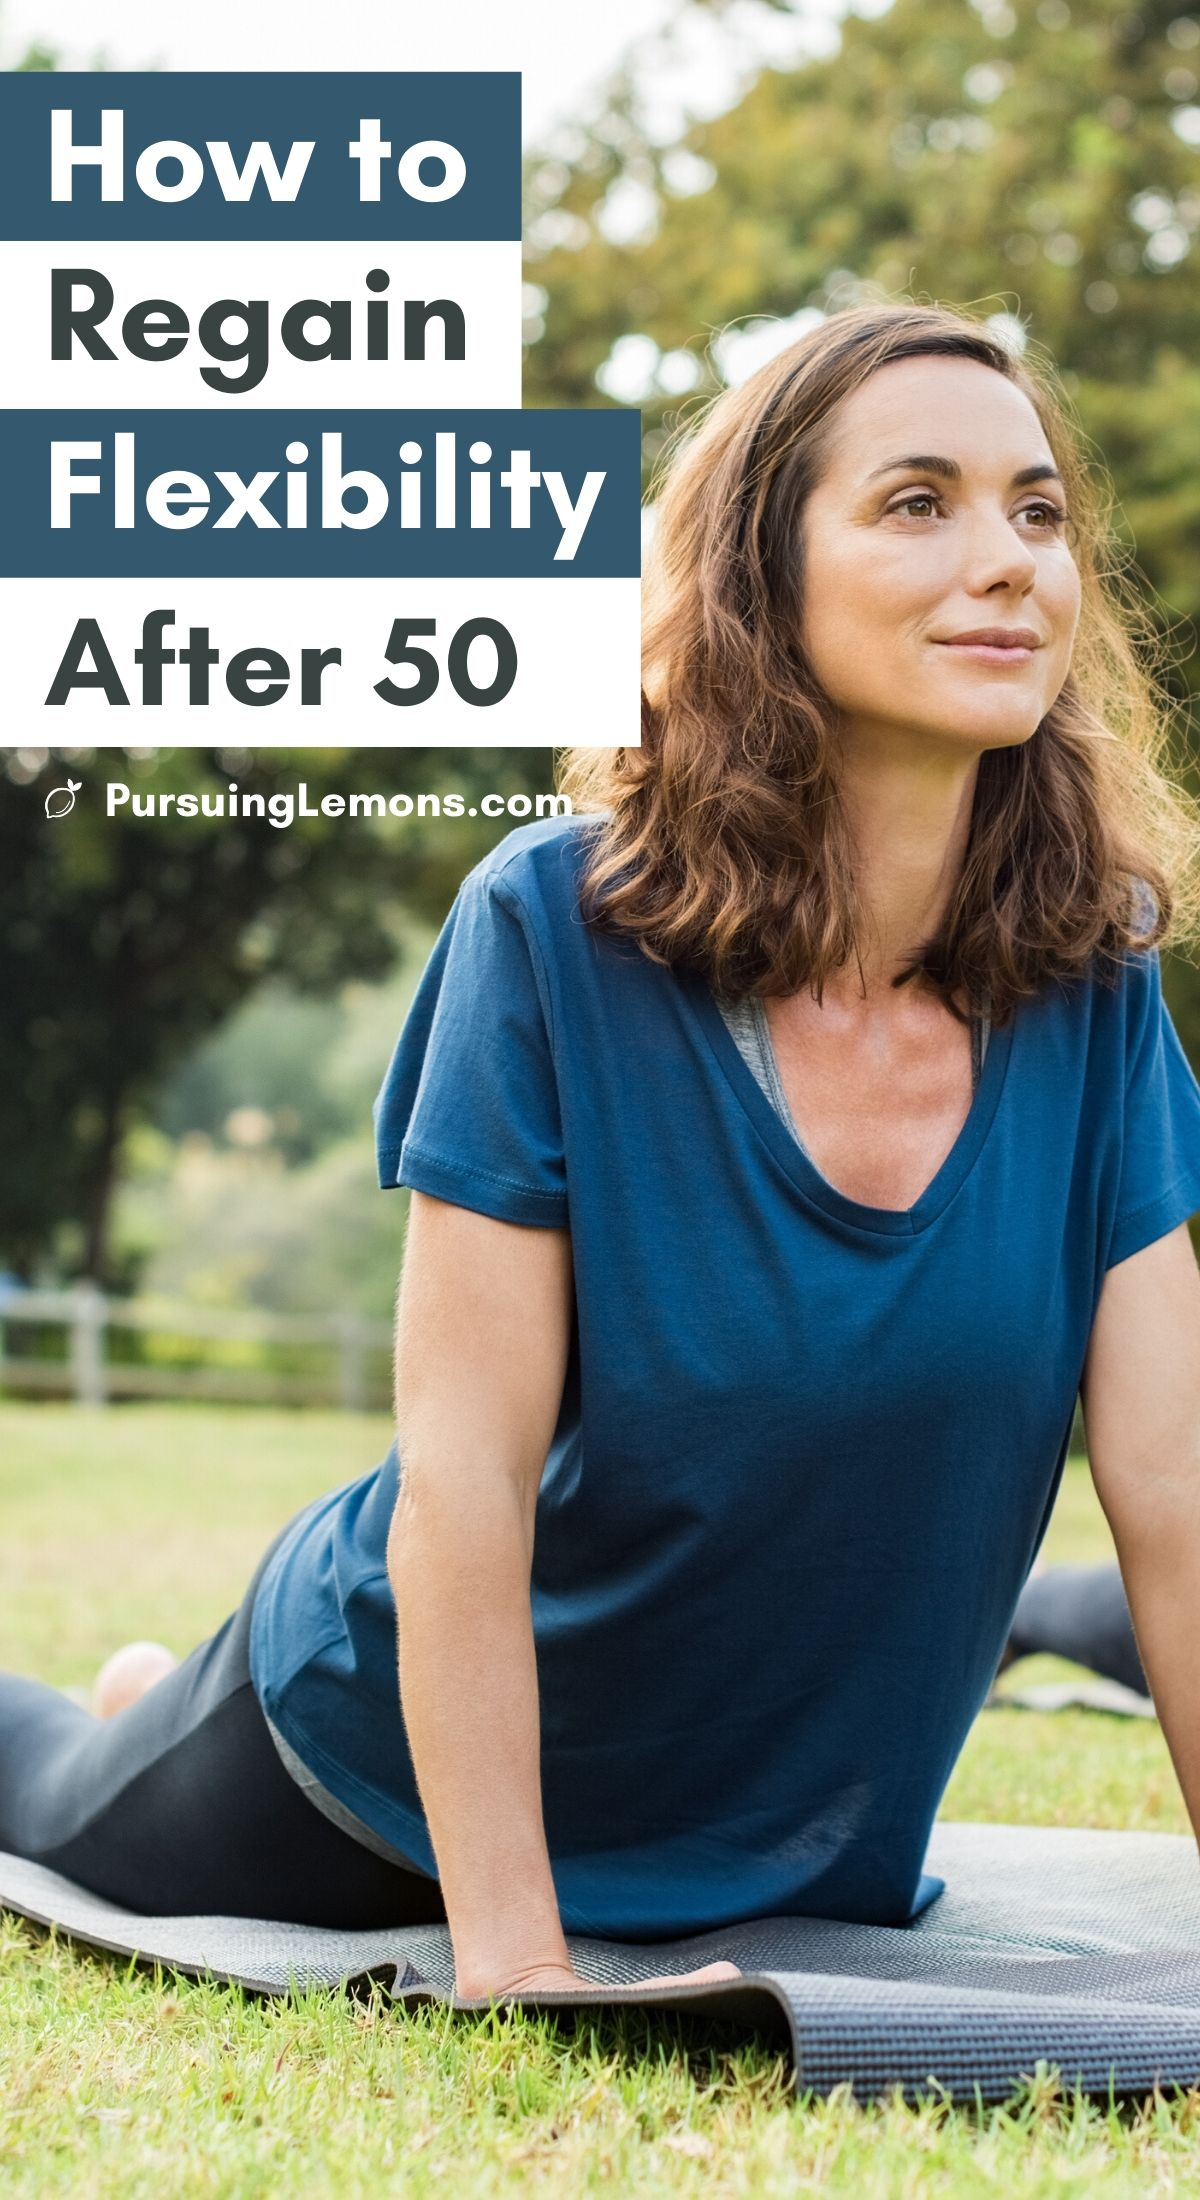 How To Regain Flexibility After 50   Age is just a number! Don't let it stop you from being flexible. Start practicing these yoga poses & yoga stretches daily to help regain flexibility even if you're over 50. Increasing your flexibility will also prevent back pains and neck pains.  #yoga #flexibility #yogaposes #regainflexibility